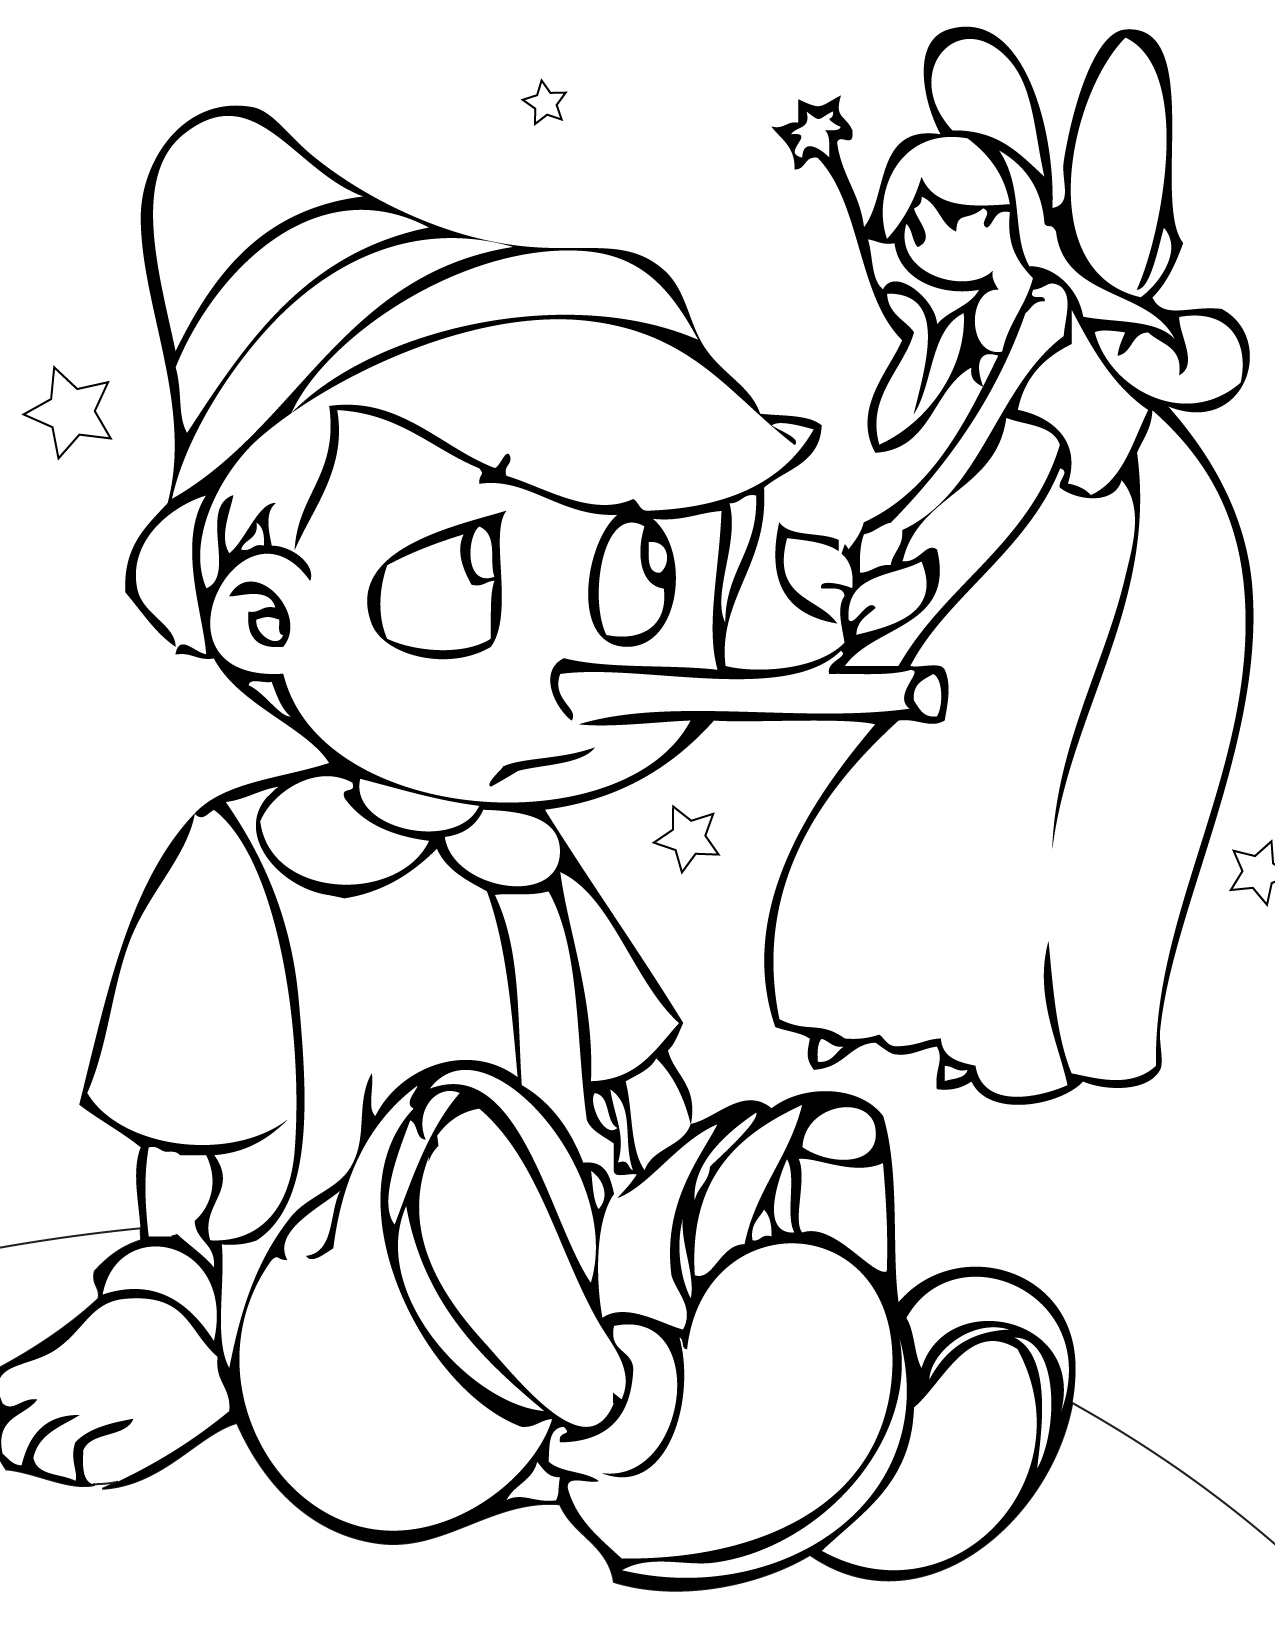 Free Printable Pinocchio Coloring Pages For Kids Children S Printable Coloring Pages